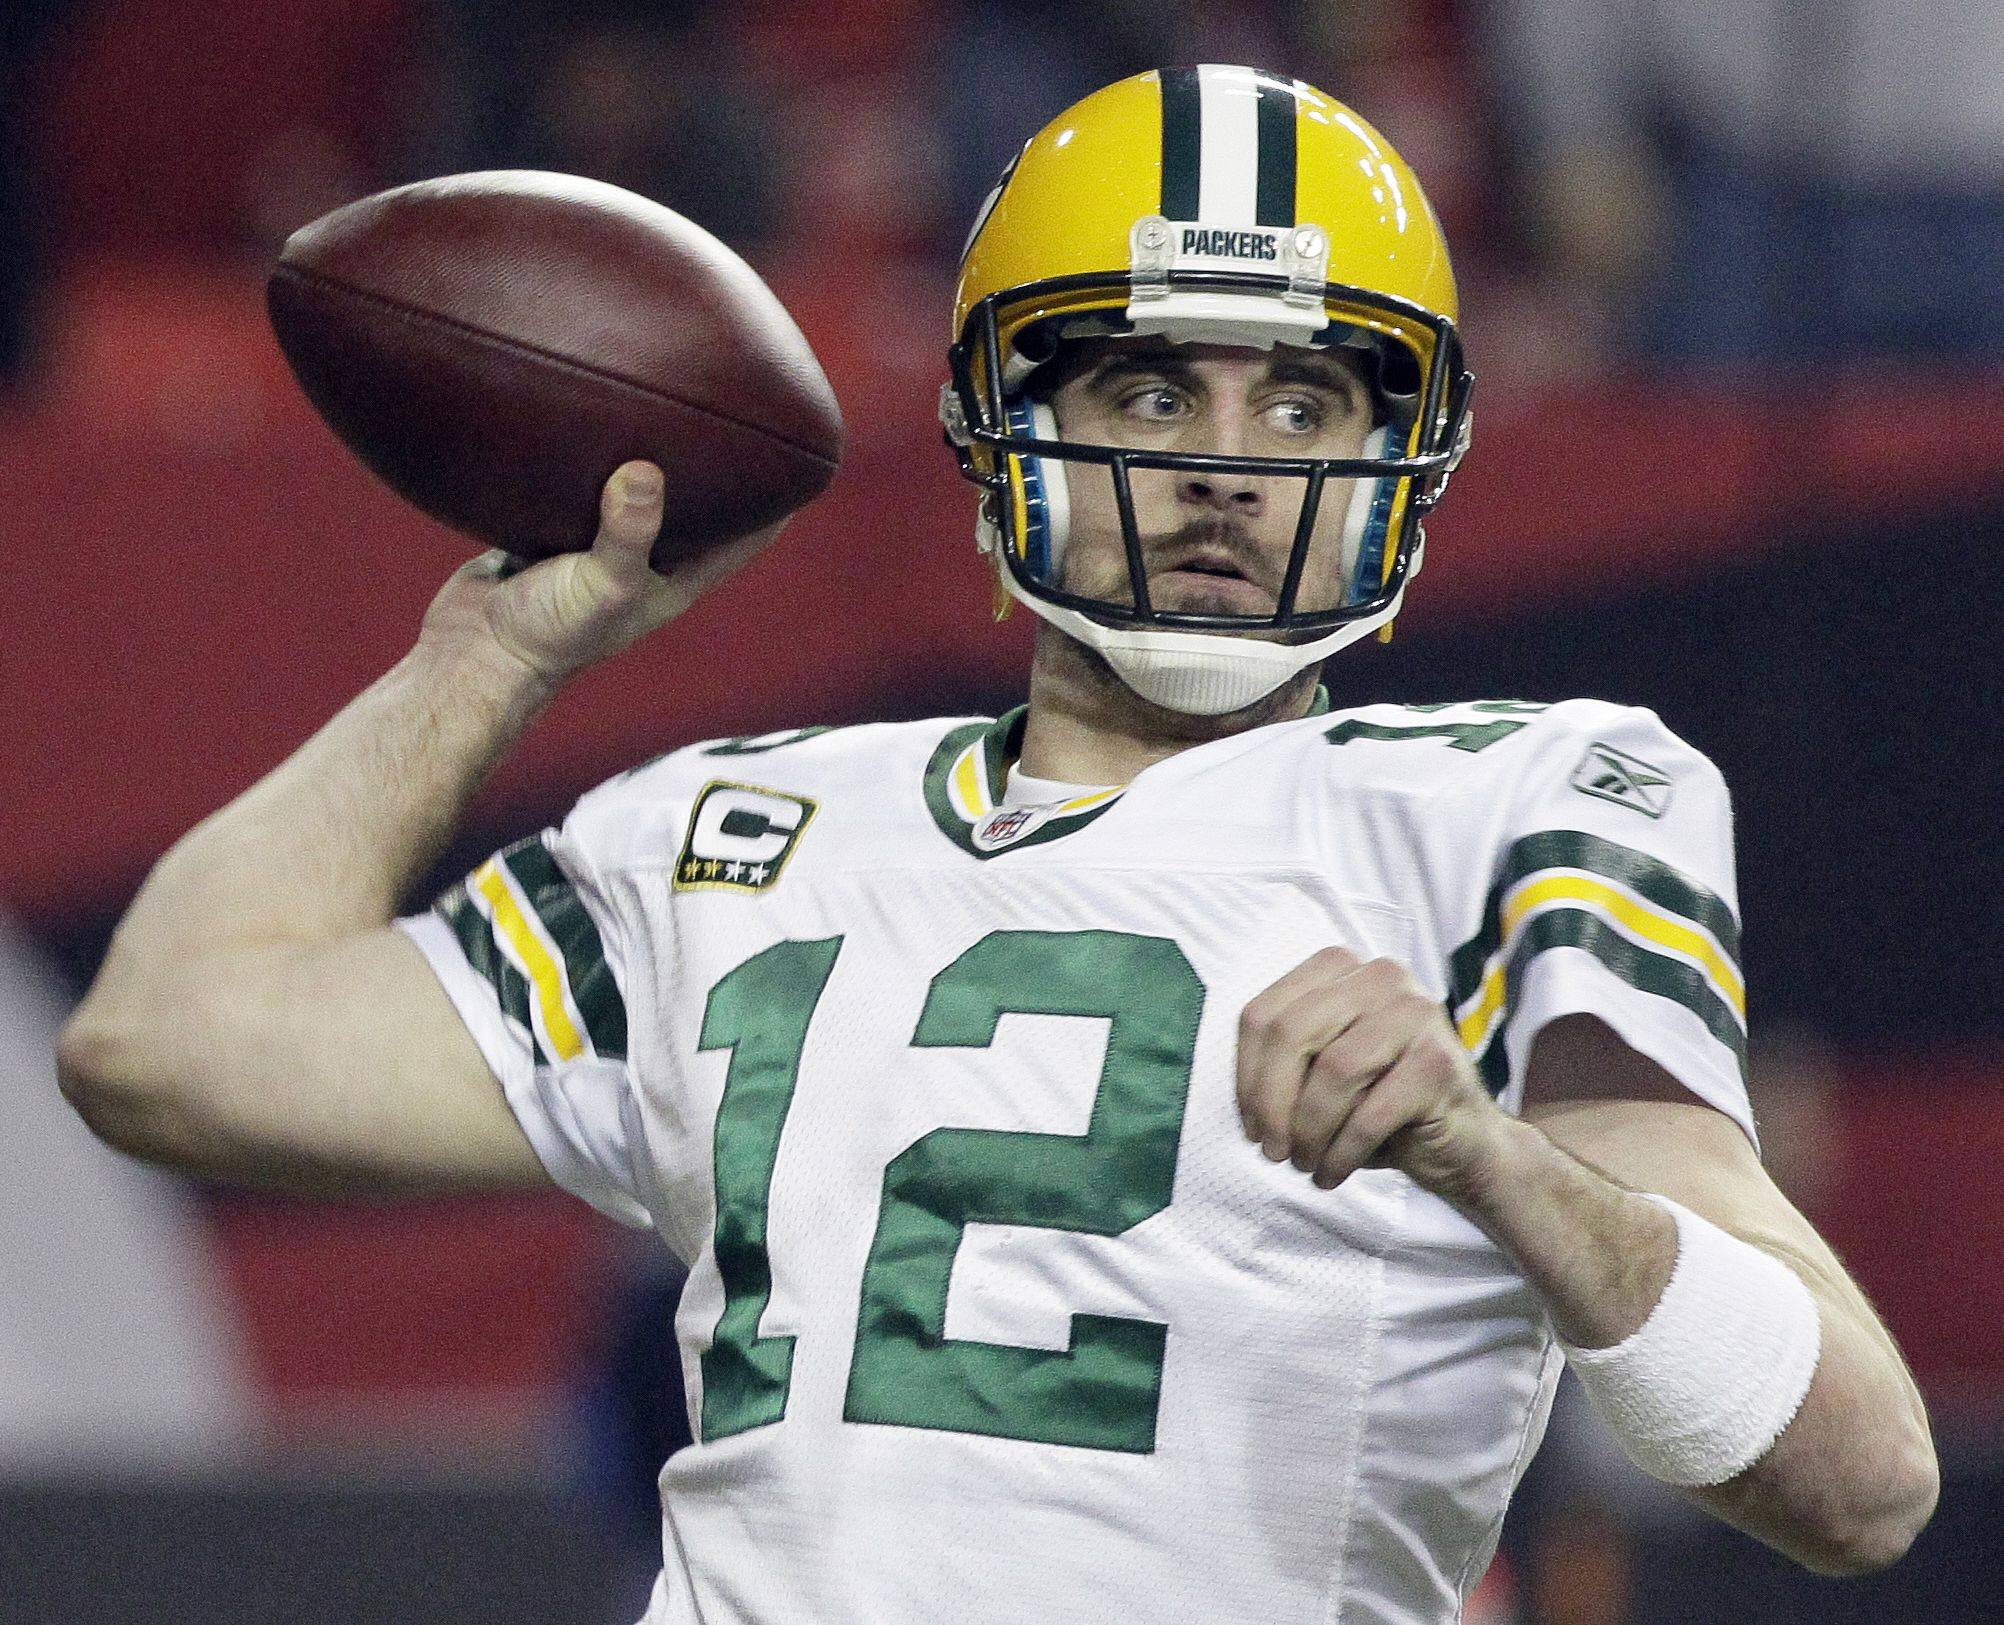 Green Bay Packers quarterback Aaron Rodgers passes against the Atlanta Falcons during the second half of an NFL divisional playoff football game, Saturday, Jan., 15, 2011, in Atlanta.